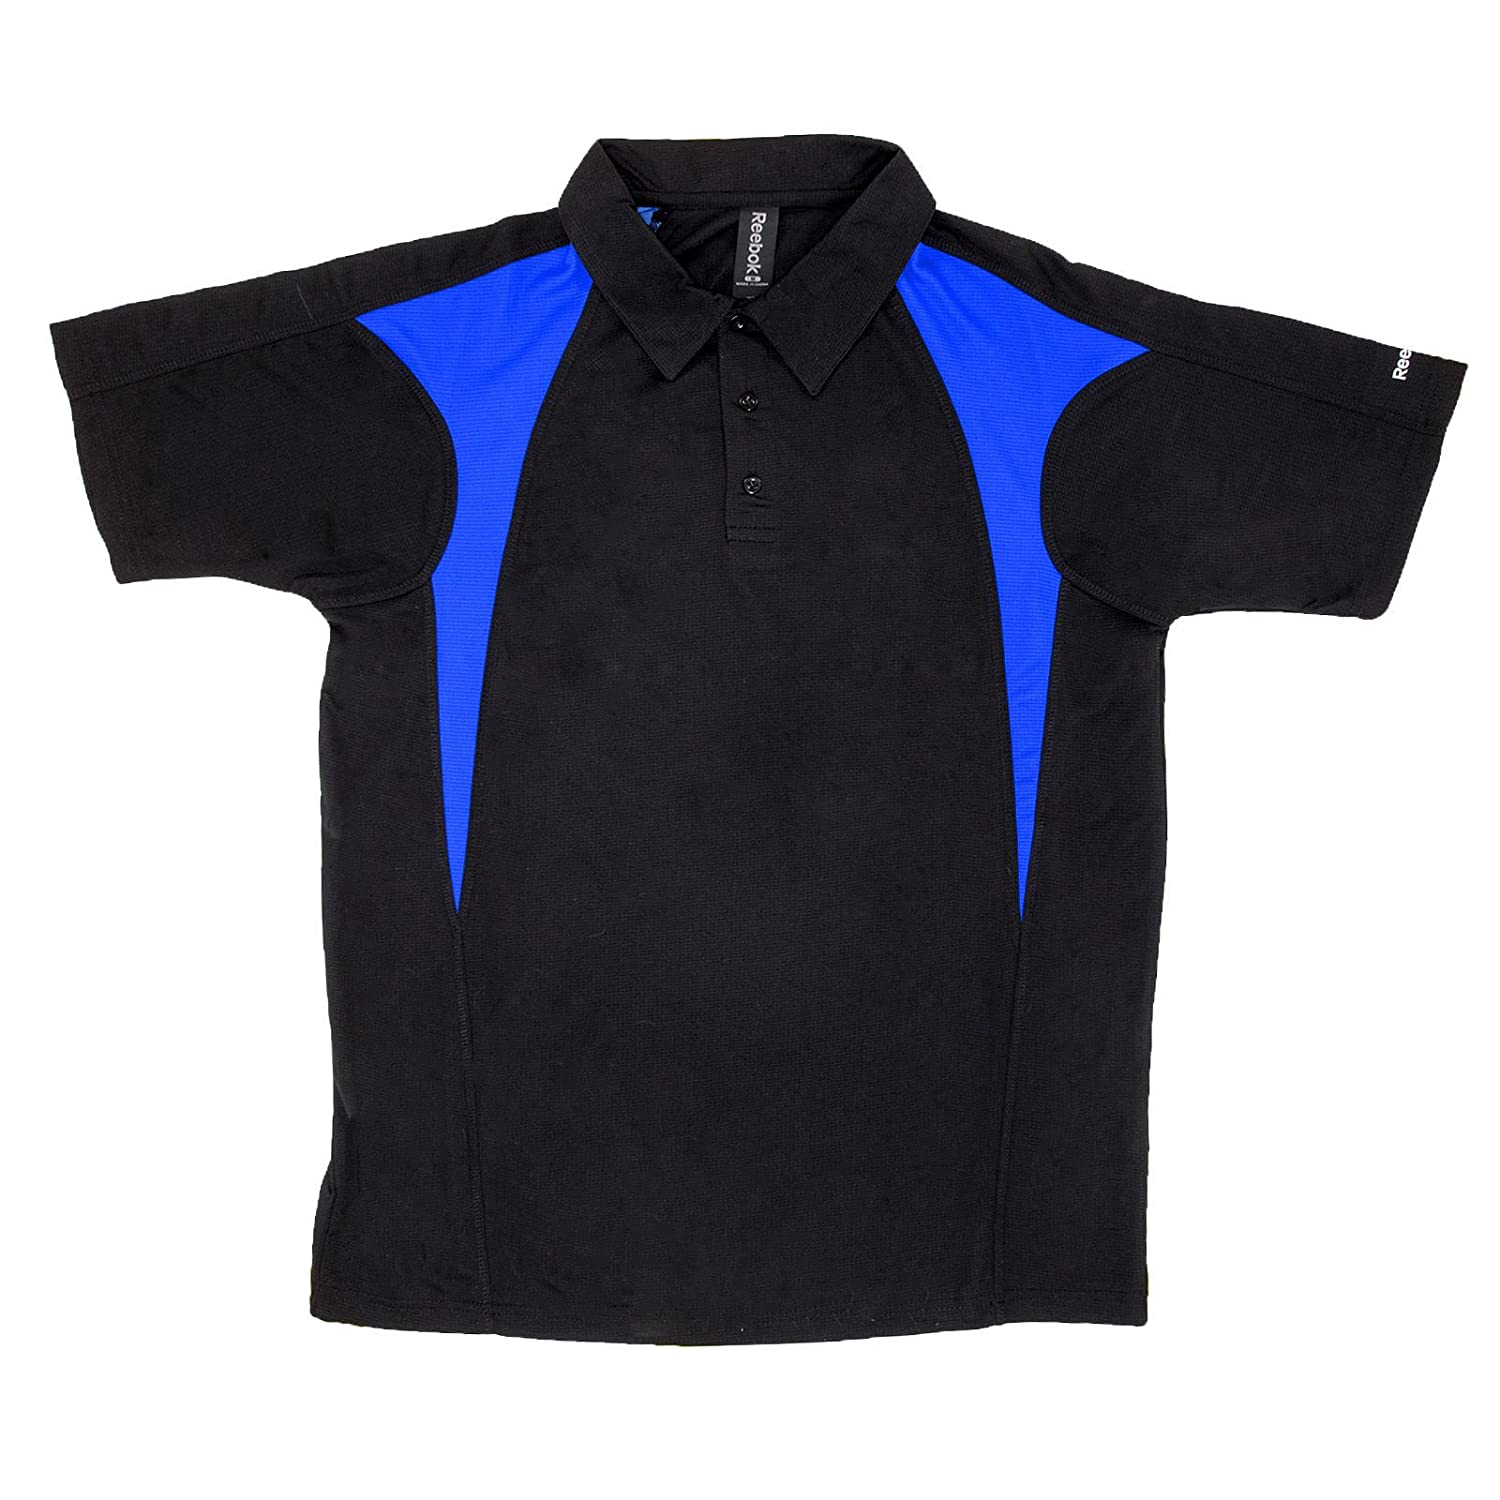 Reebok Mens Colorblock Golf Polo X-Large Black/Royal Blue: Amazon ...